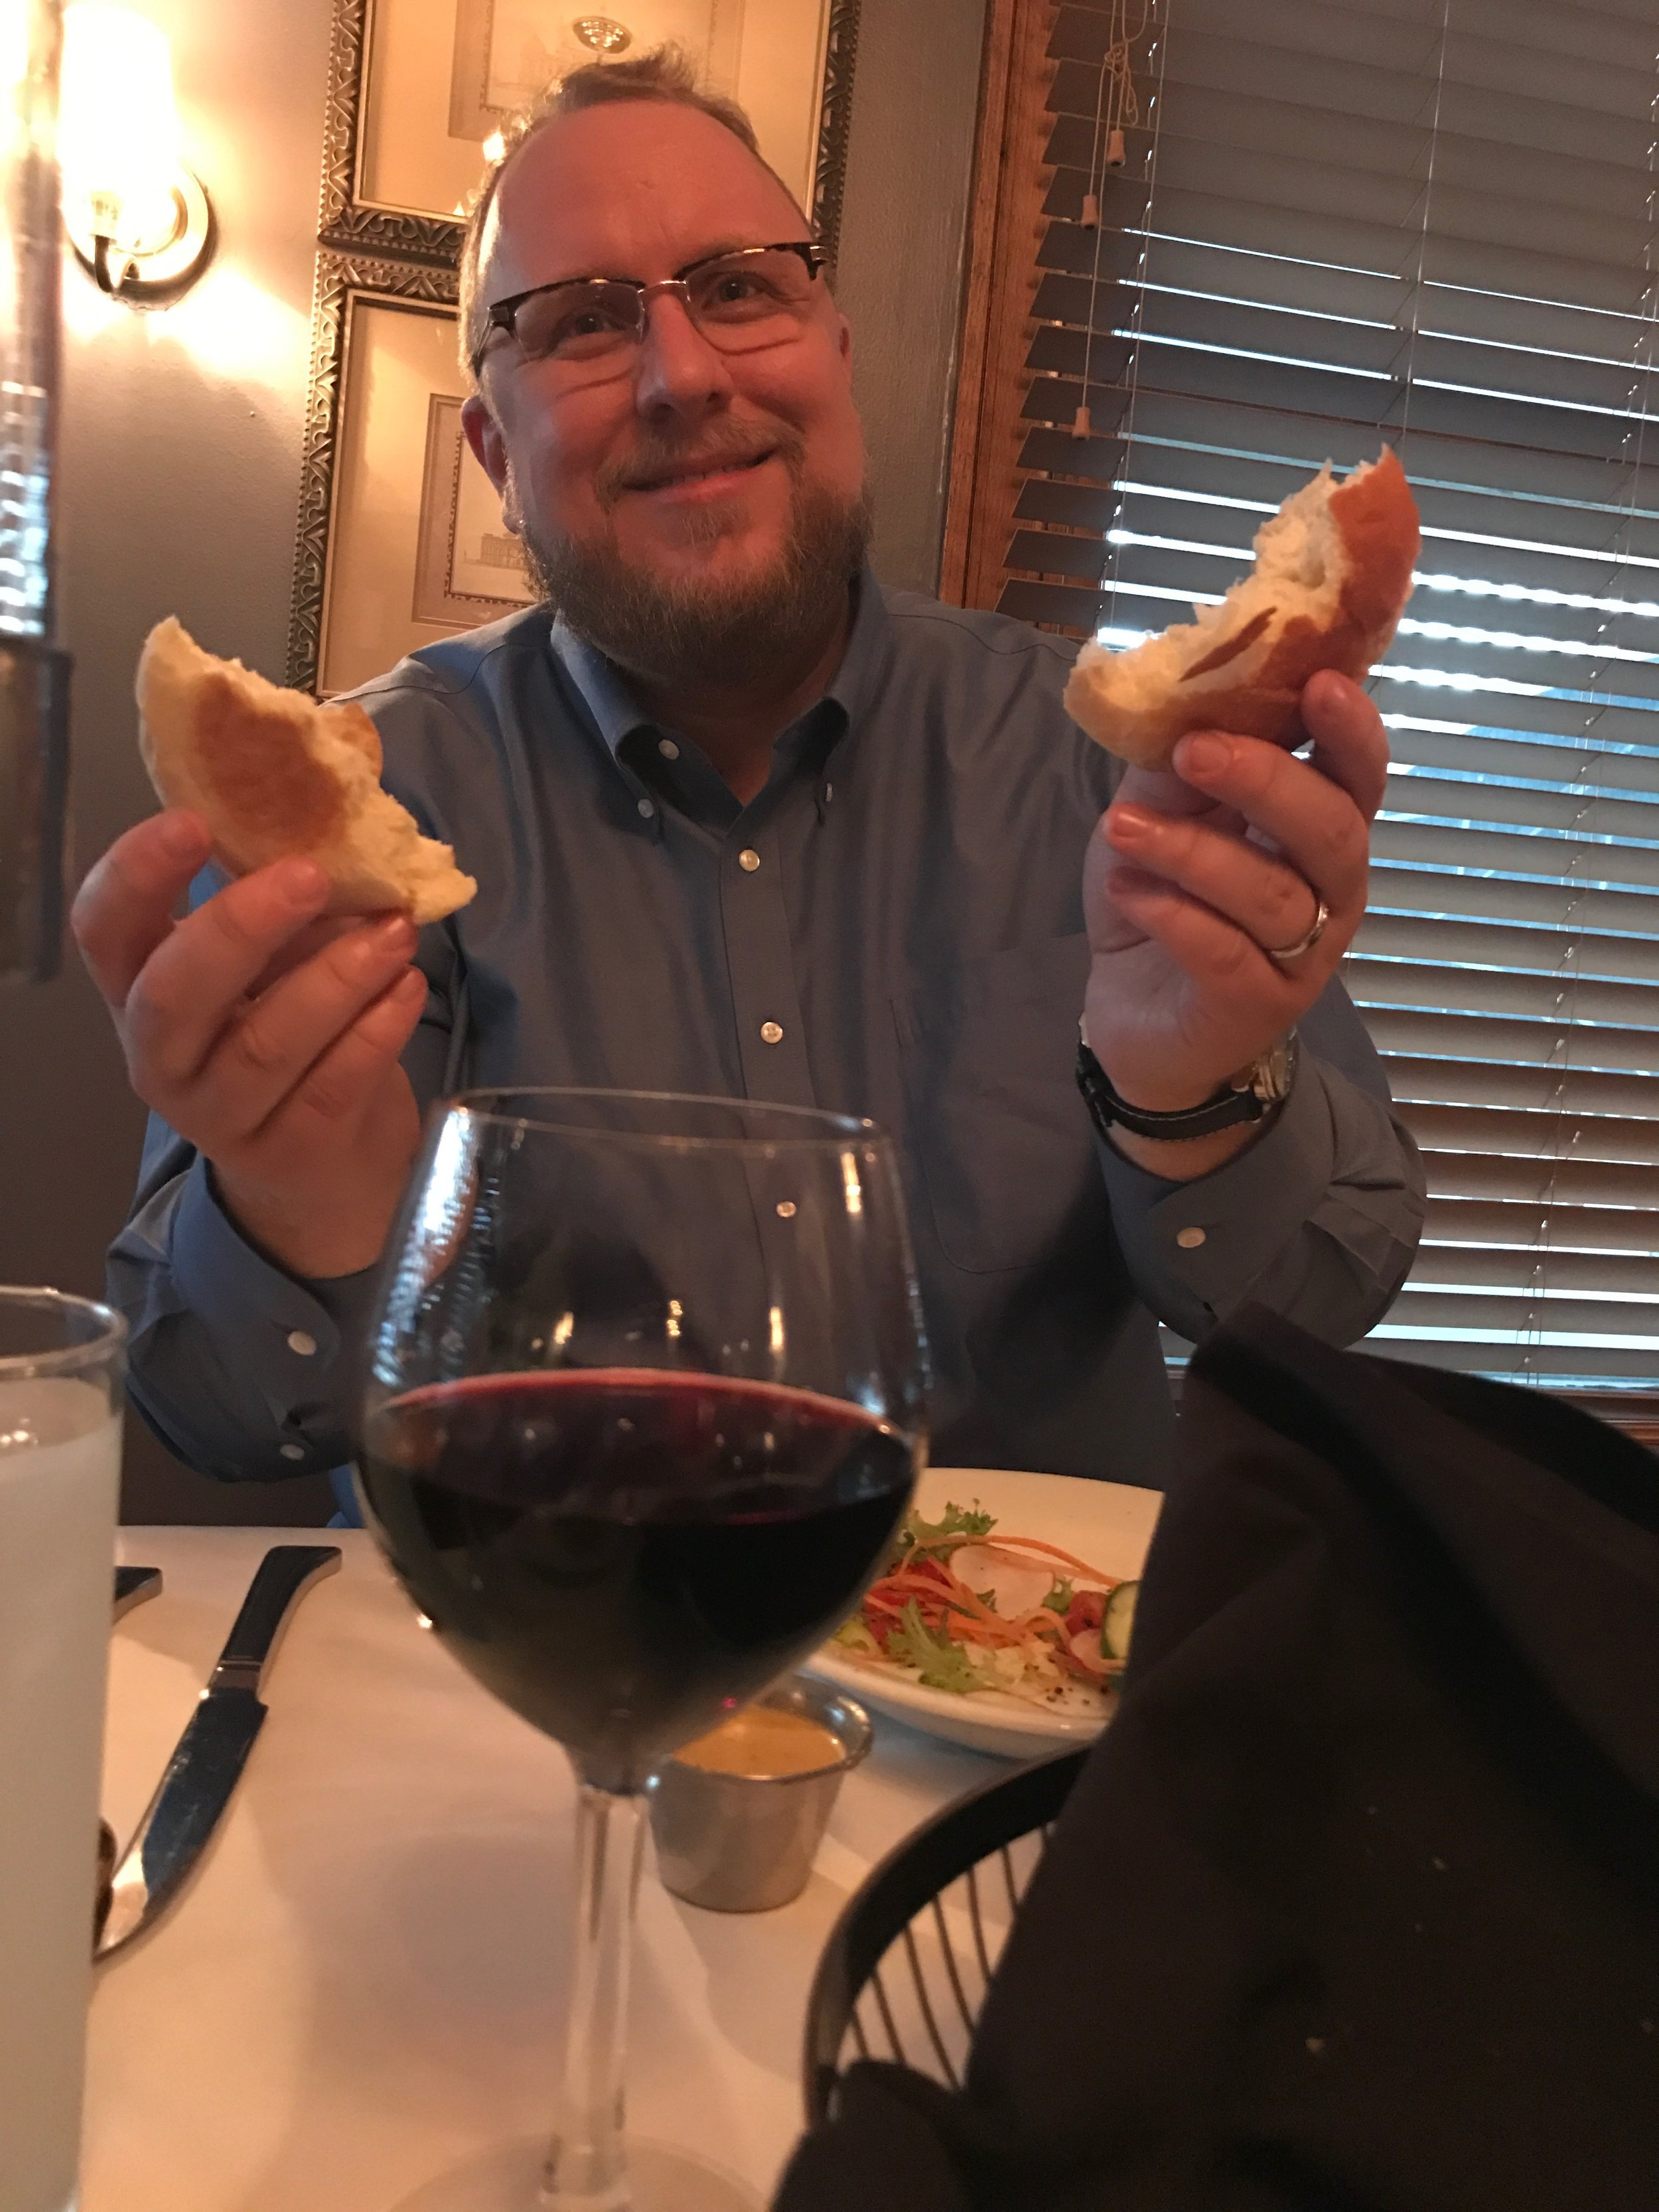 This is what happens when you go to dinner with a priest!